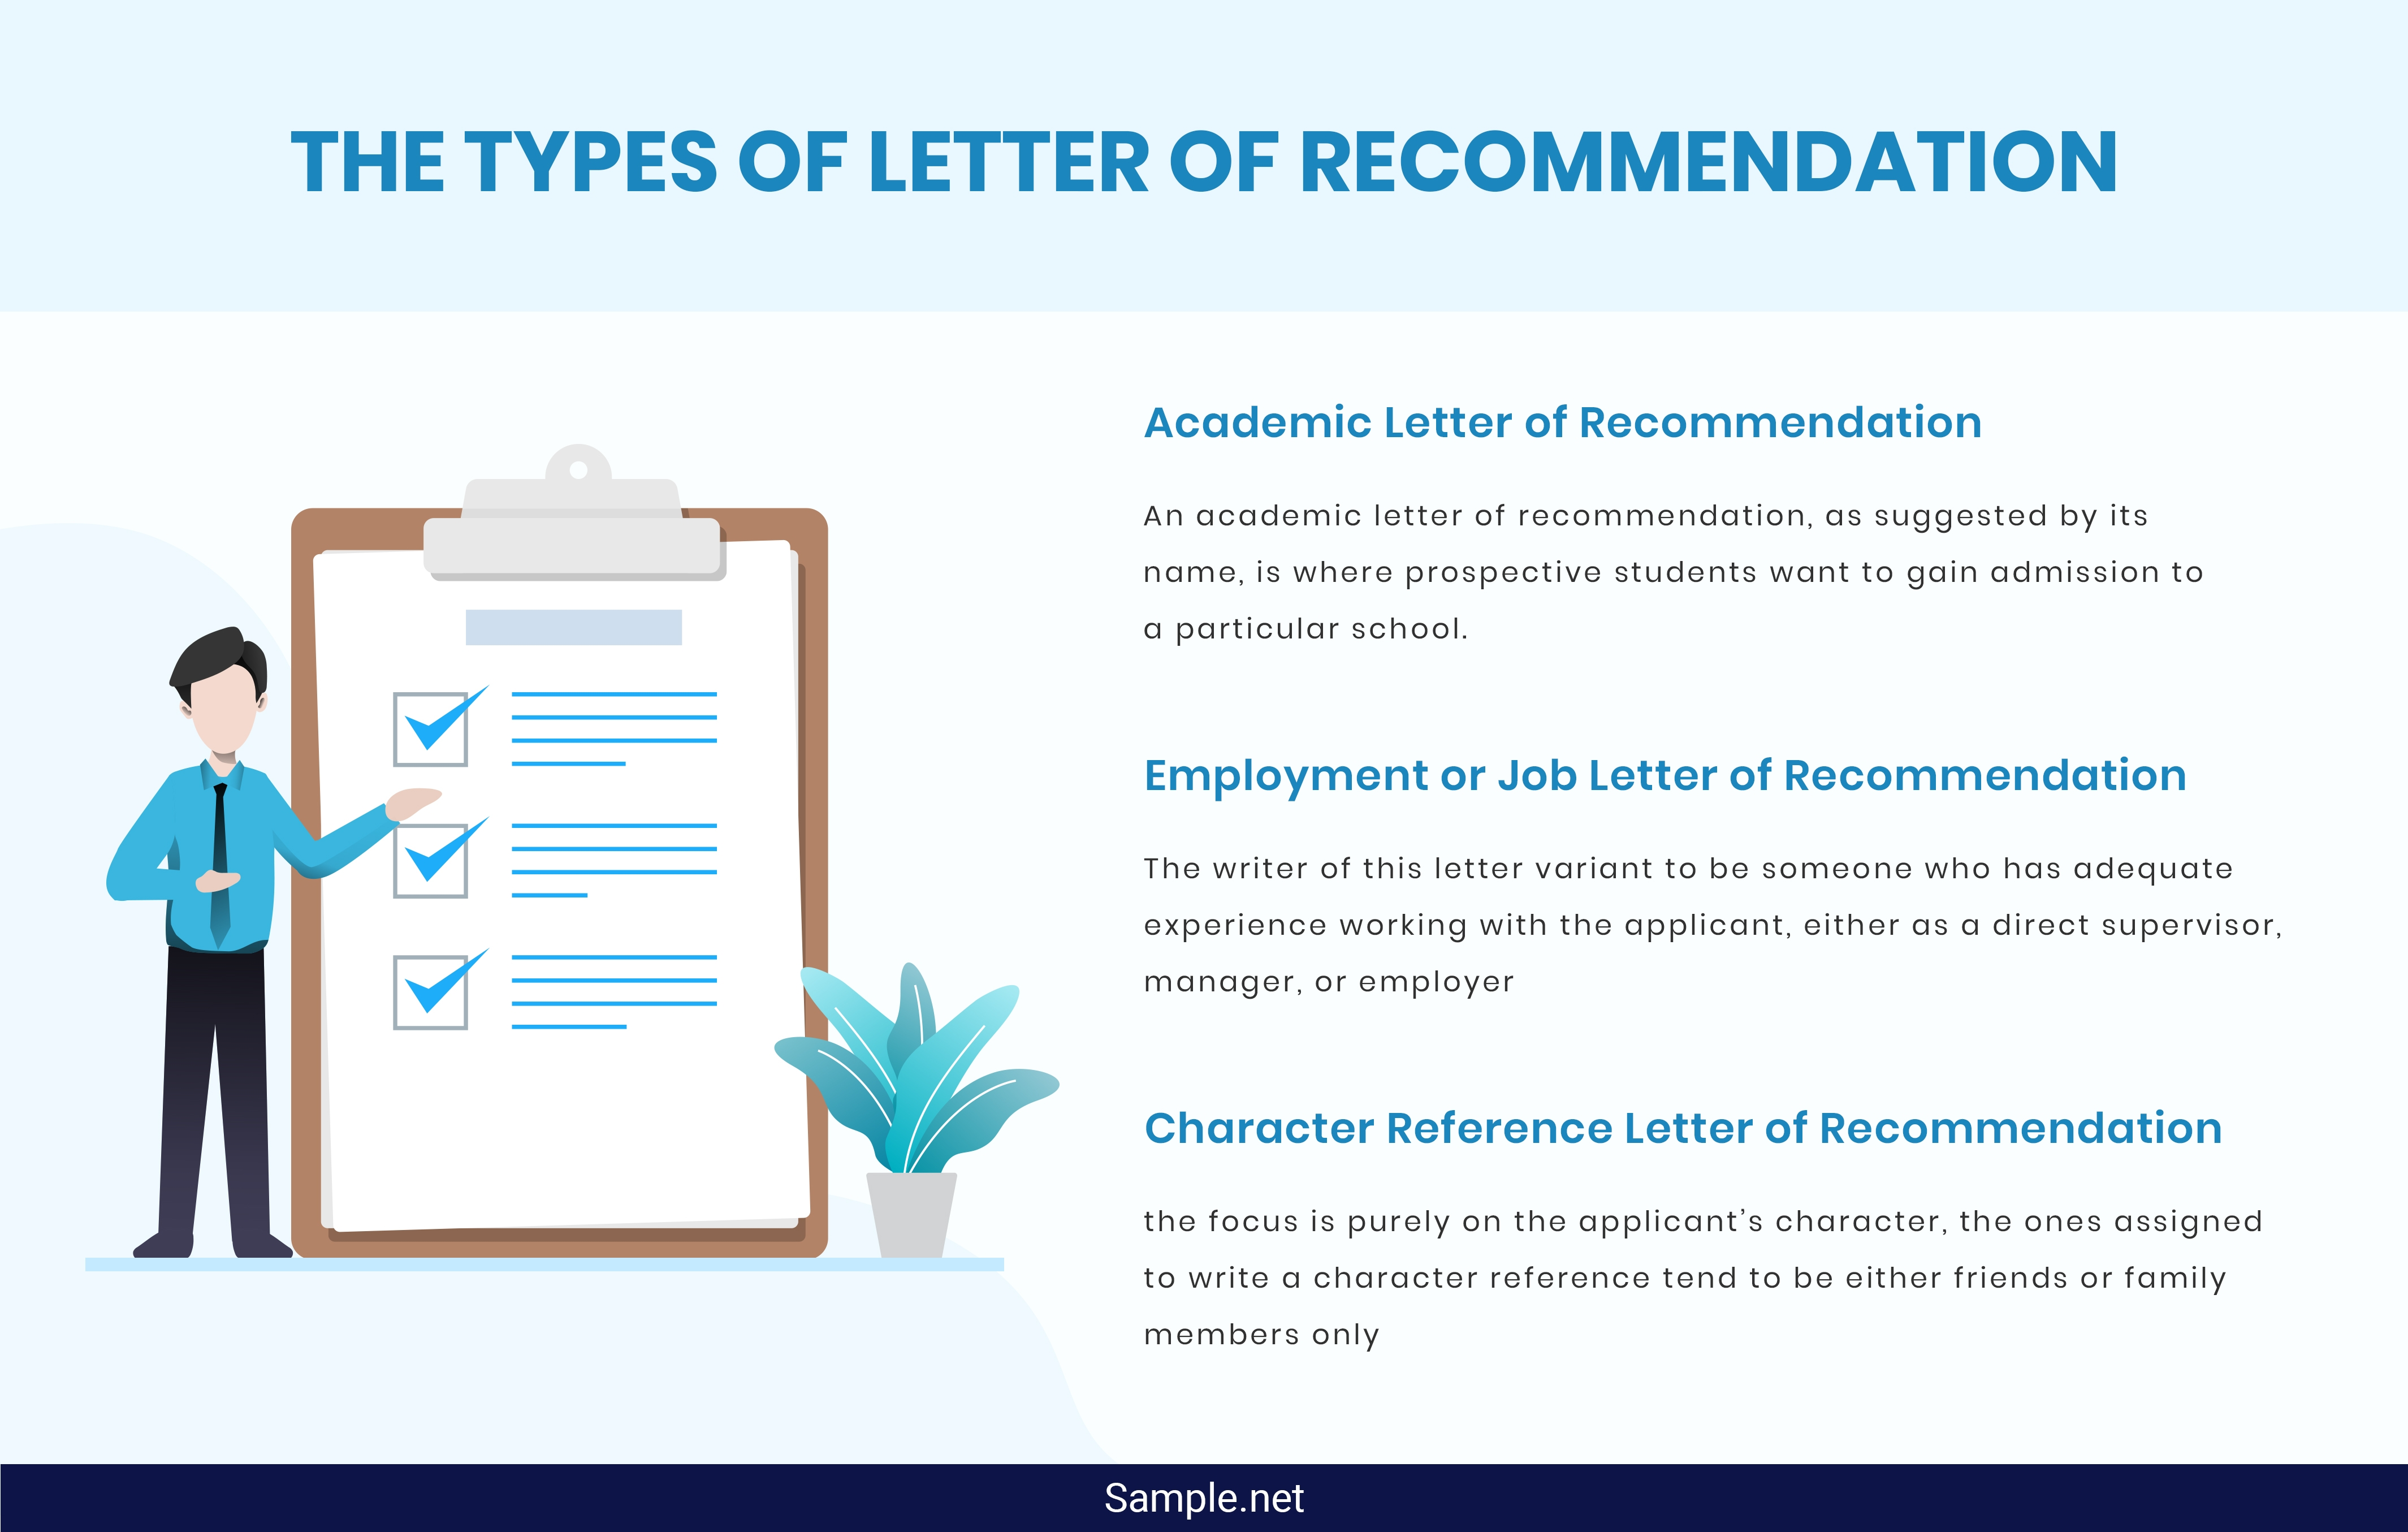 50-sample-law-school-letter-of-recommendation-2